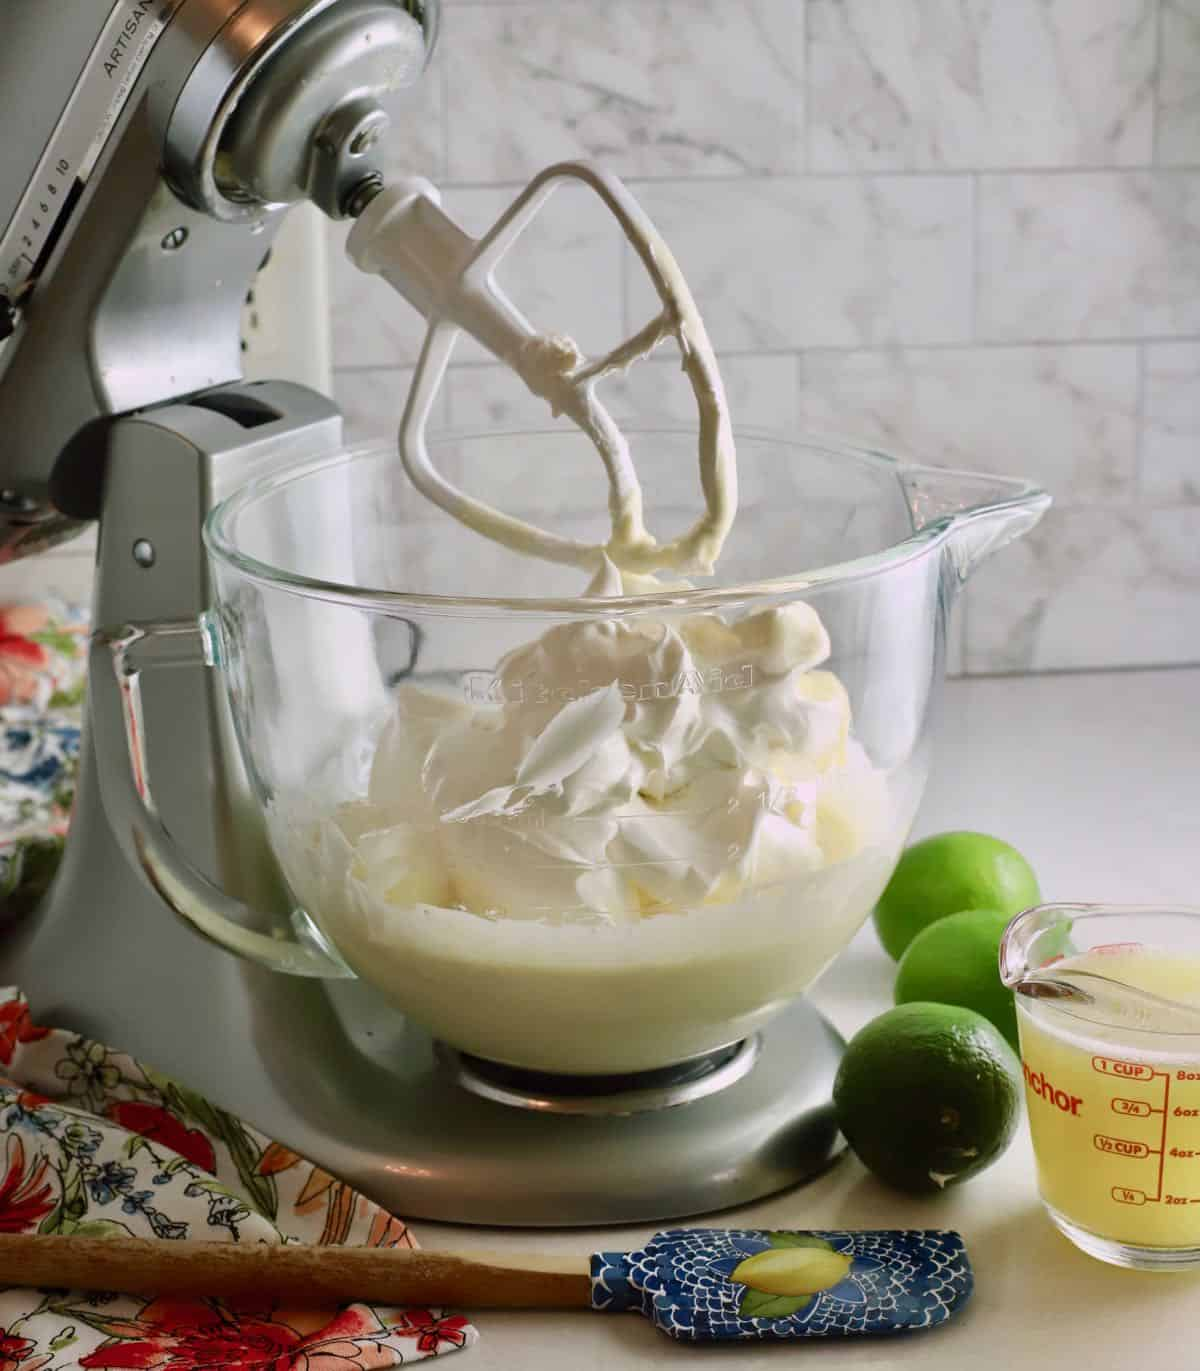 An electric mixer bowl full of cool whip and sweetened condensed milk.